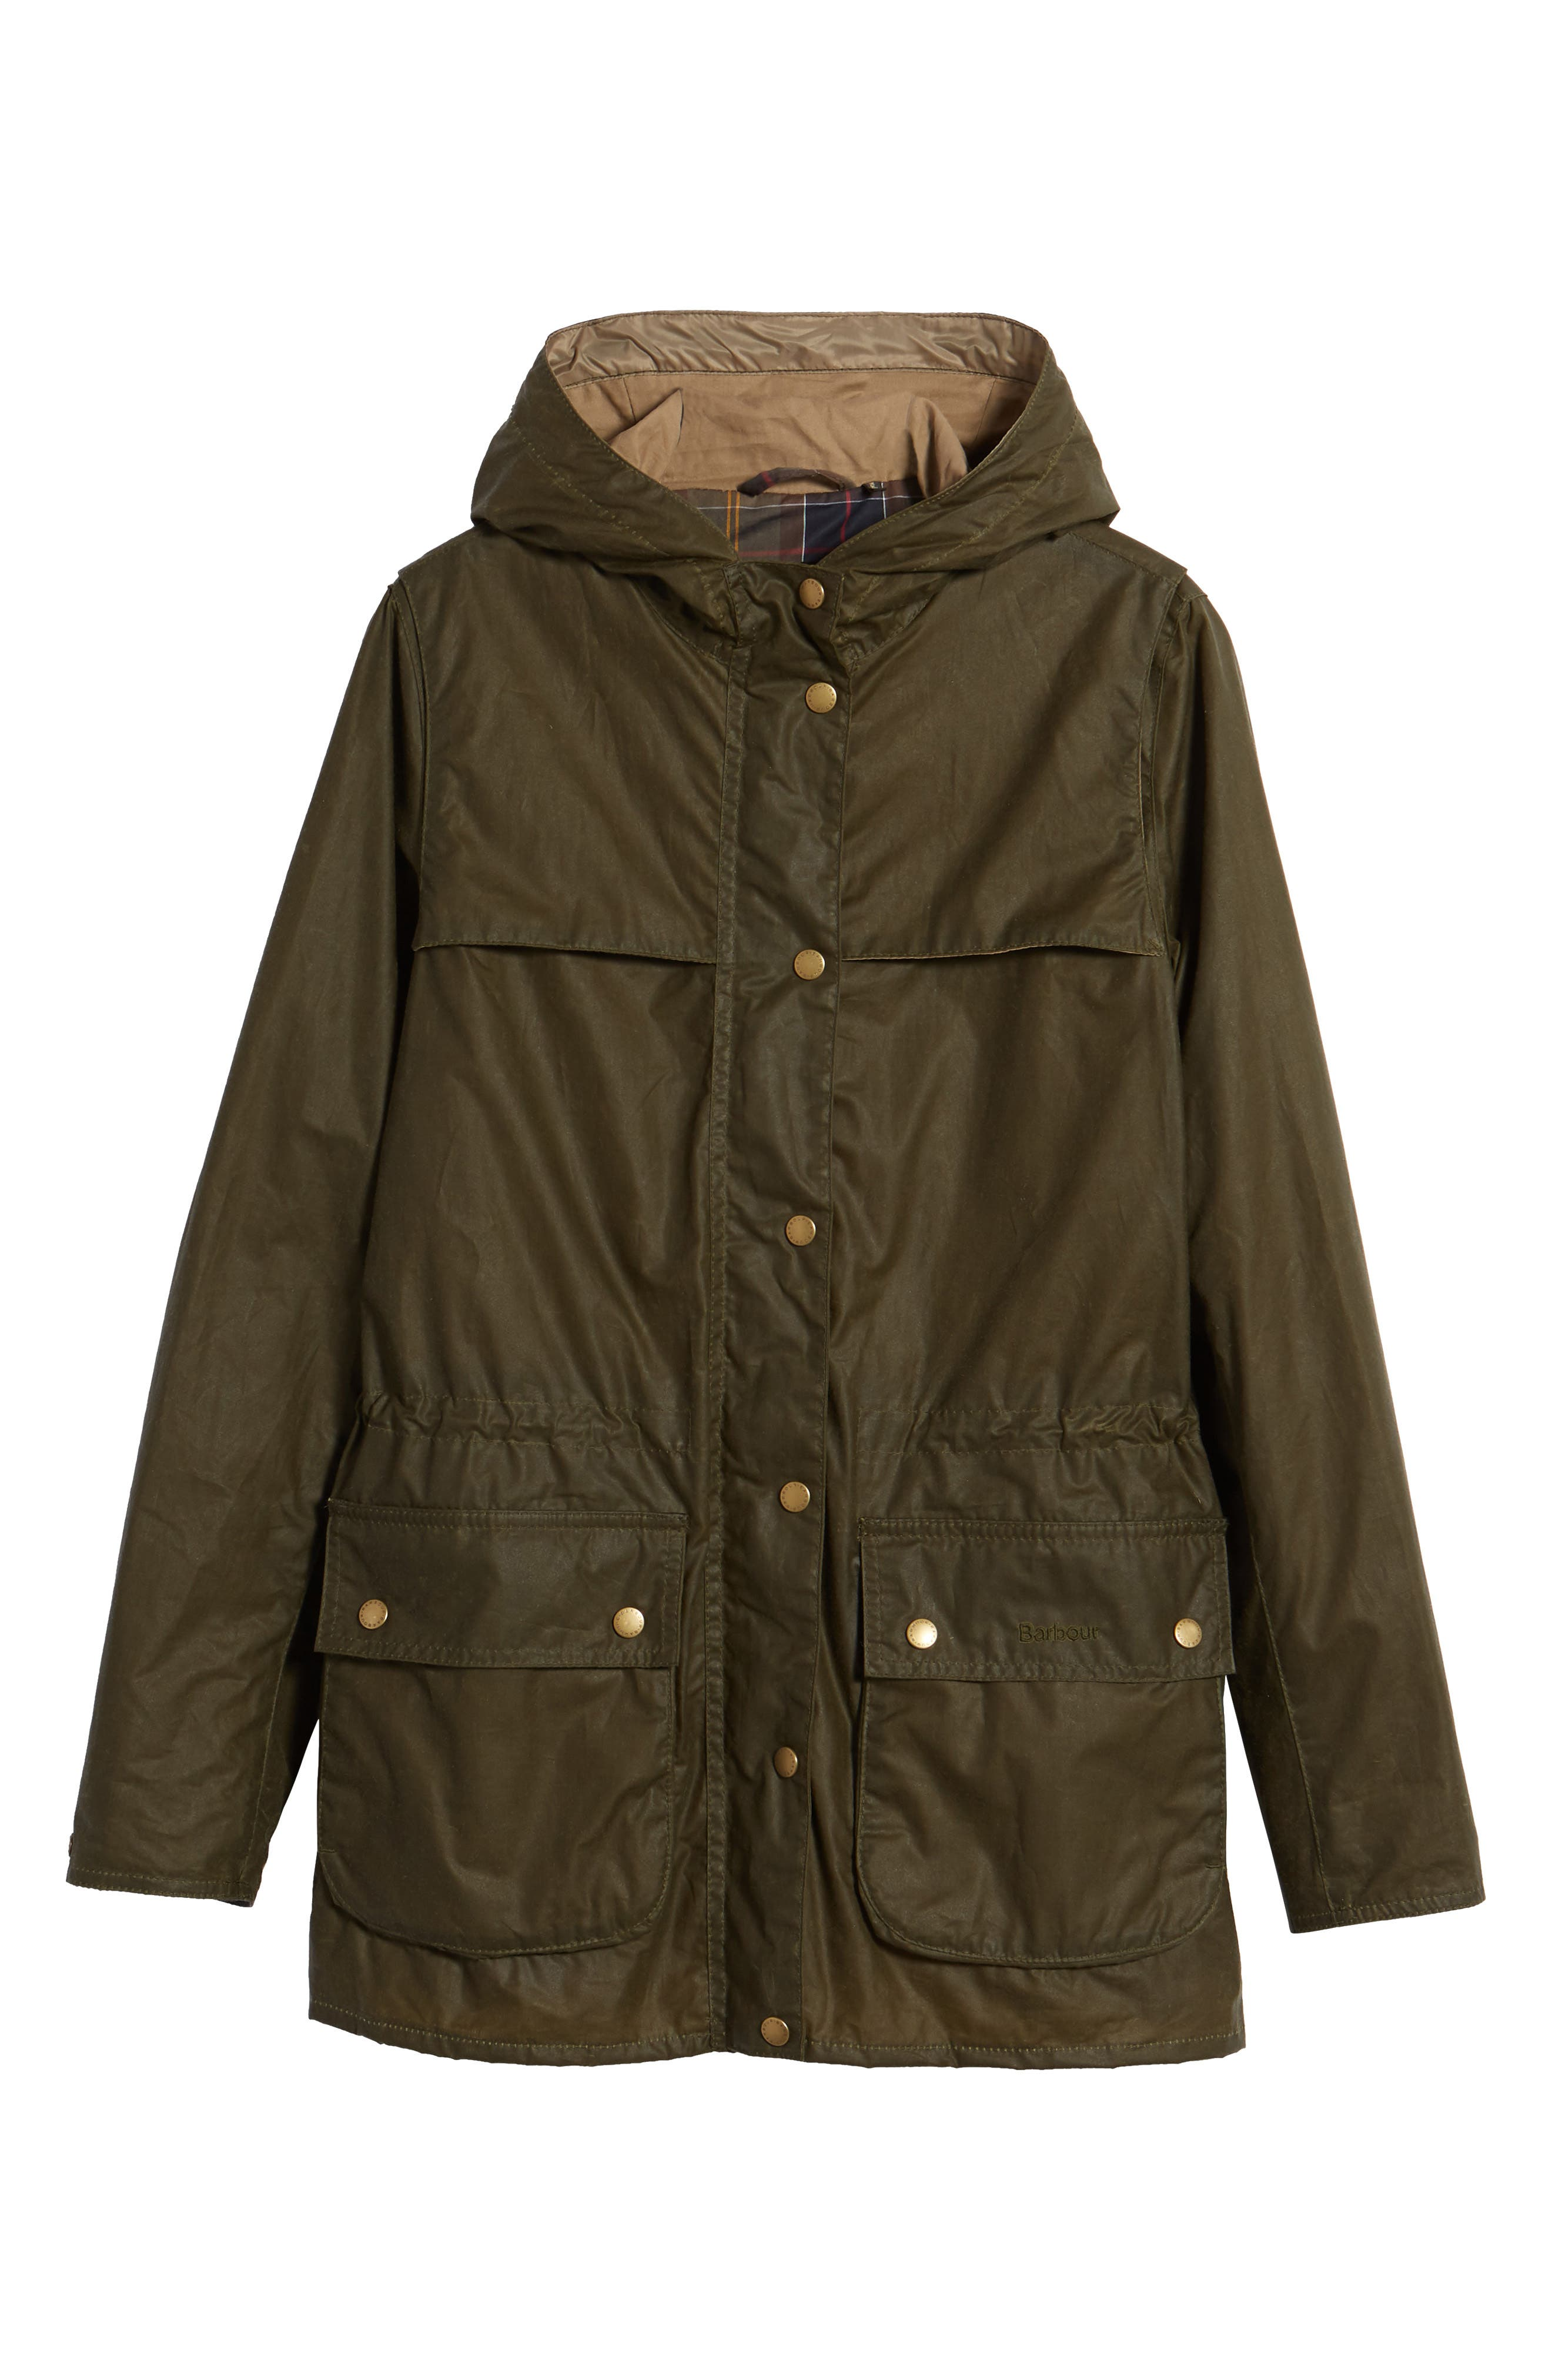 Durham Lightweight Wax Cotton Jacket,                             Alternate thumbnail 7, color,                             Archive Olive